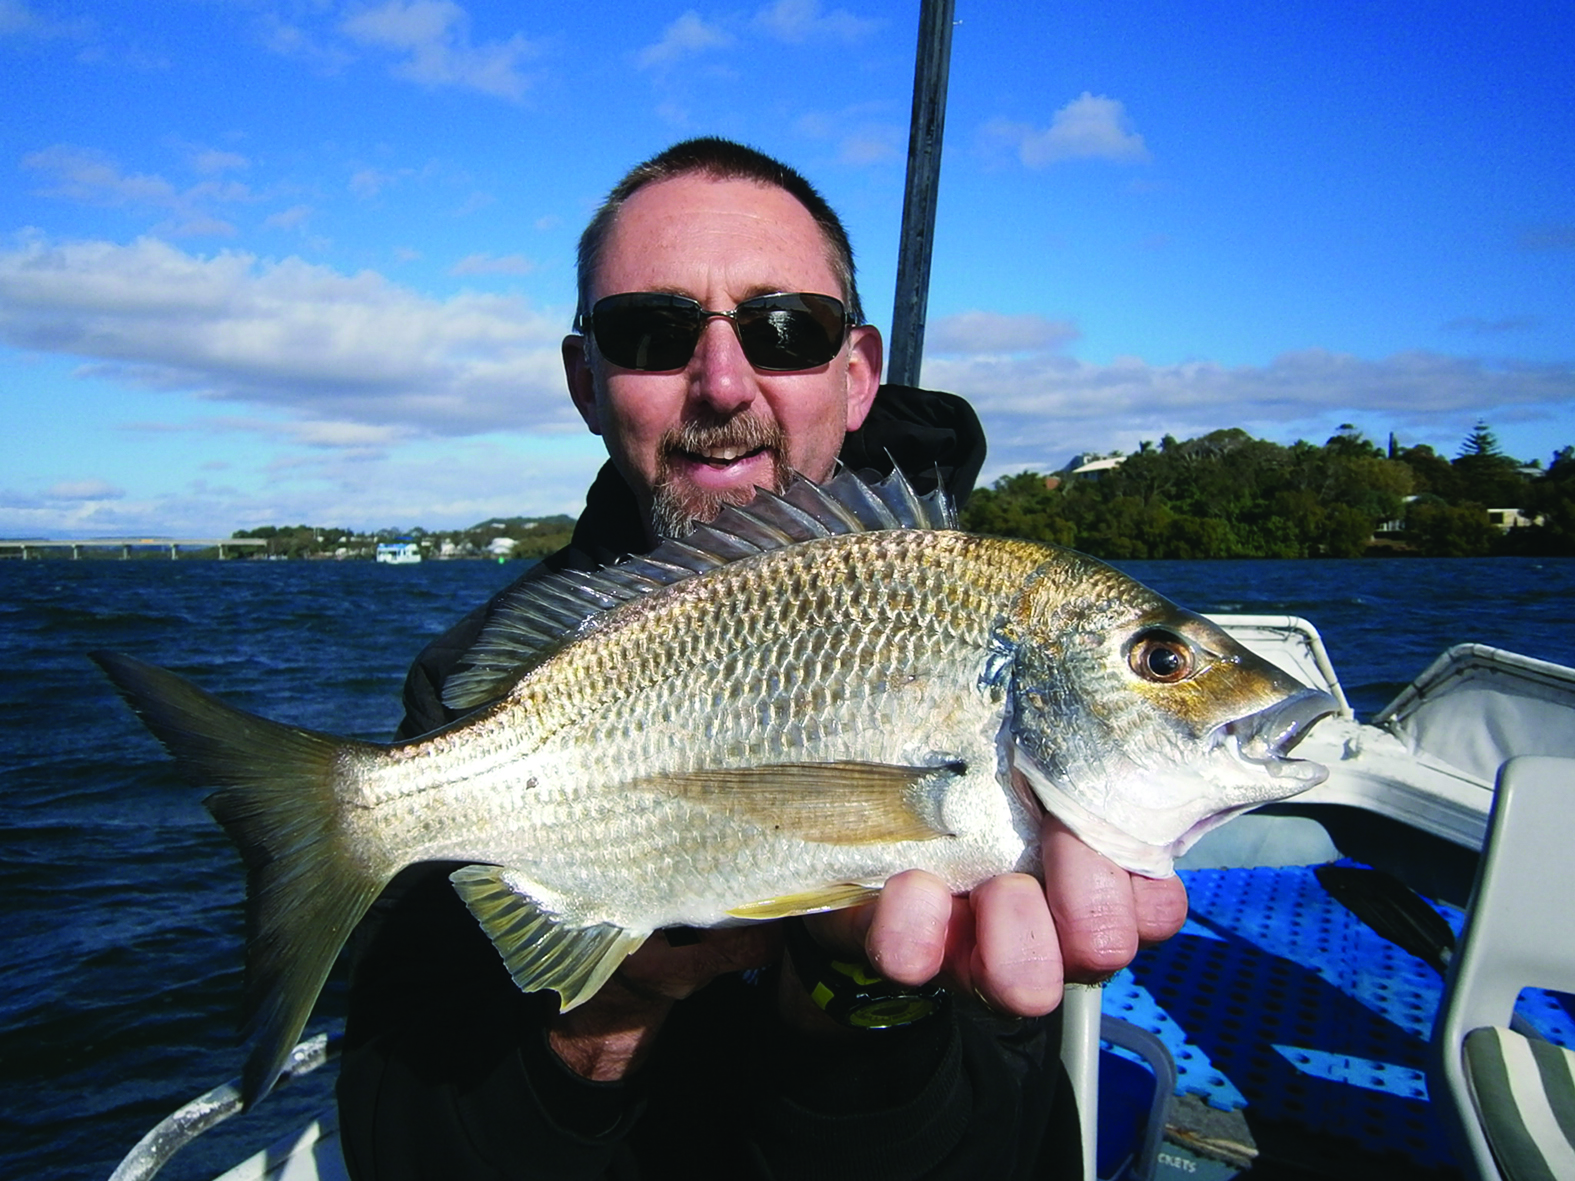 Winter fishing bream. Tackle for winter bream fishing 9